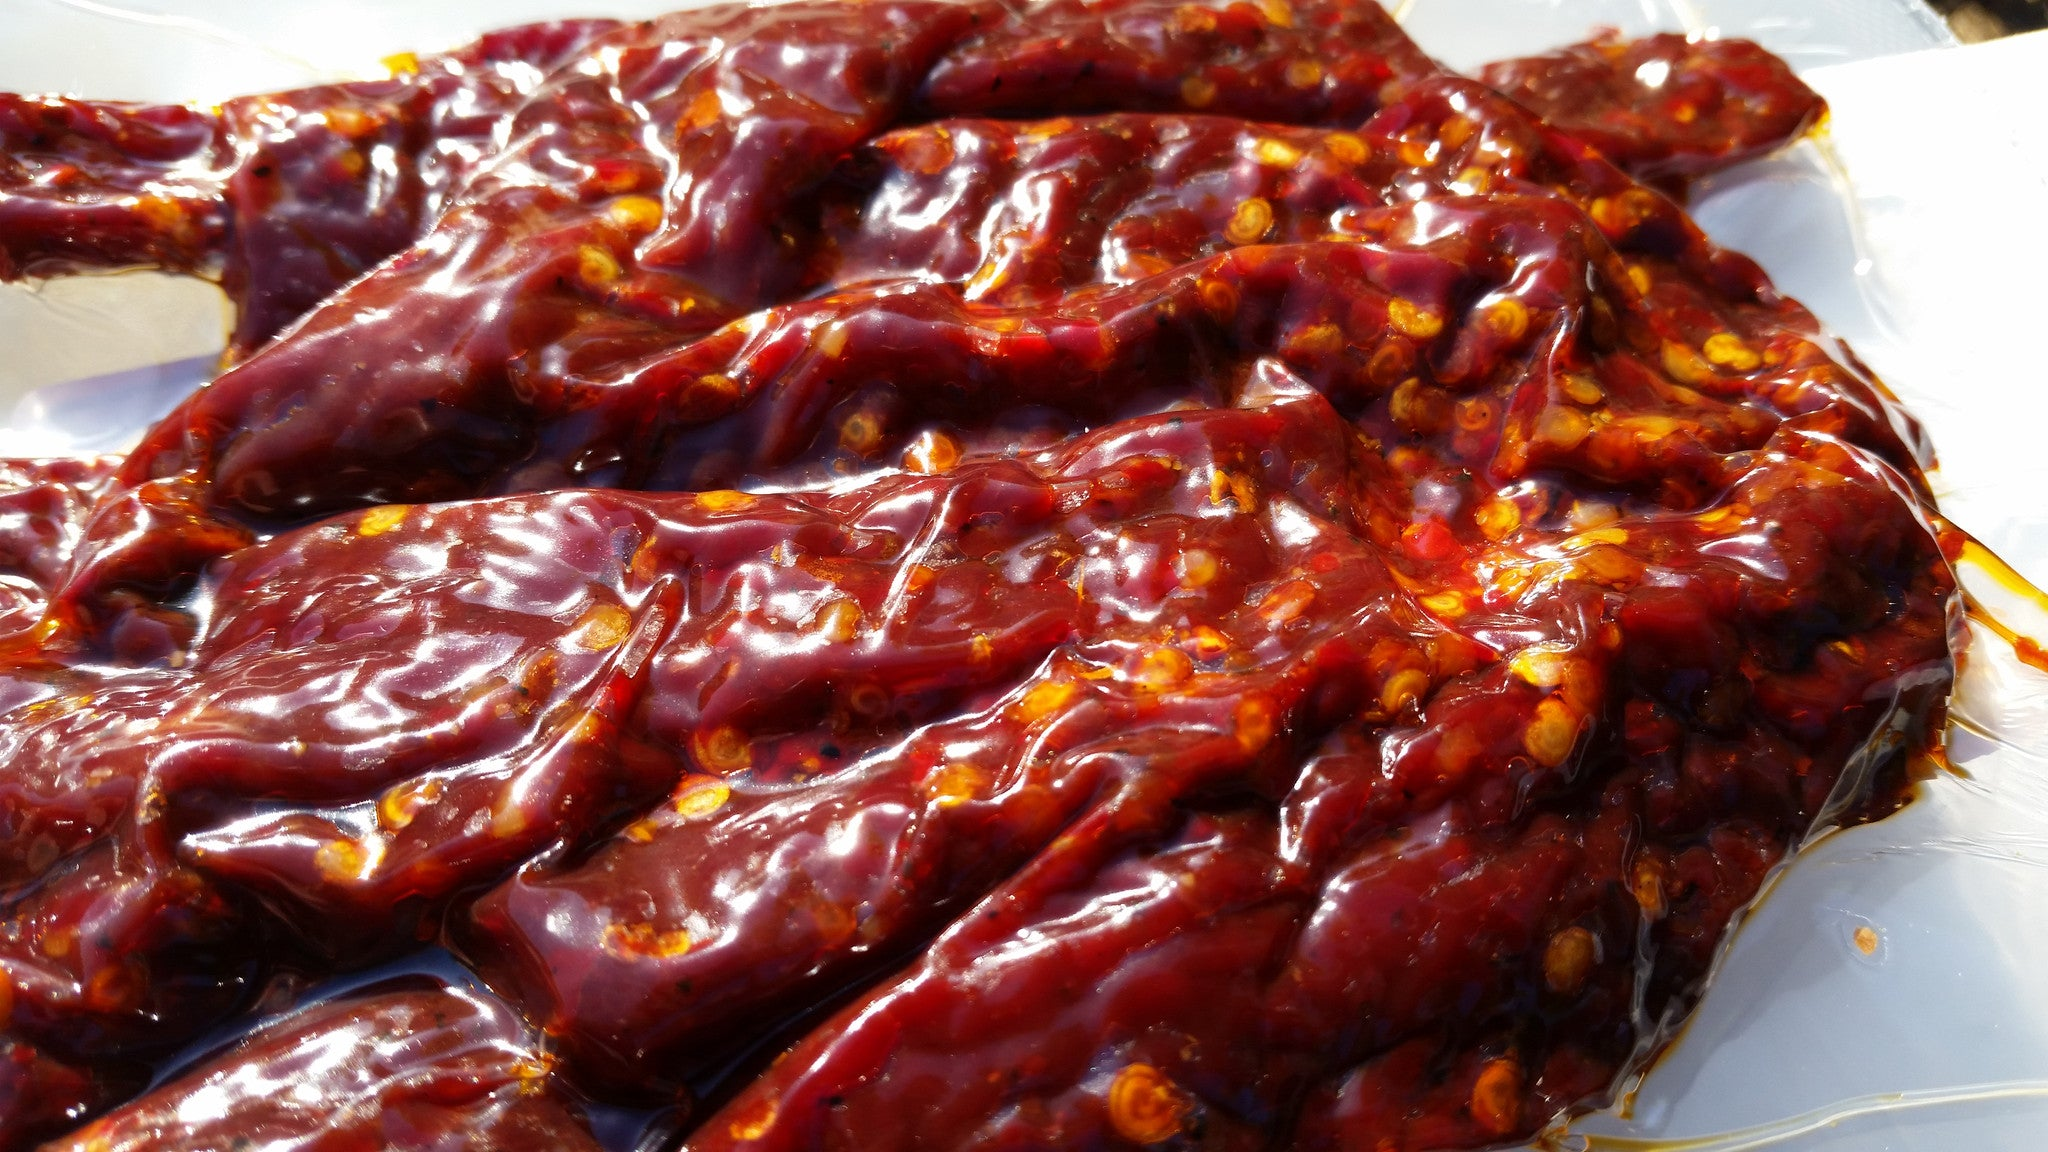 Ghost Pepper 3x (Chernobyl), The Jerky Hut -- (8oz.) - The Jerky Hut online